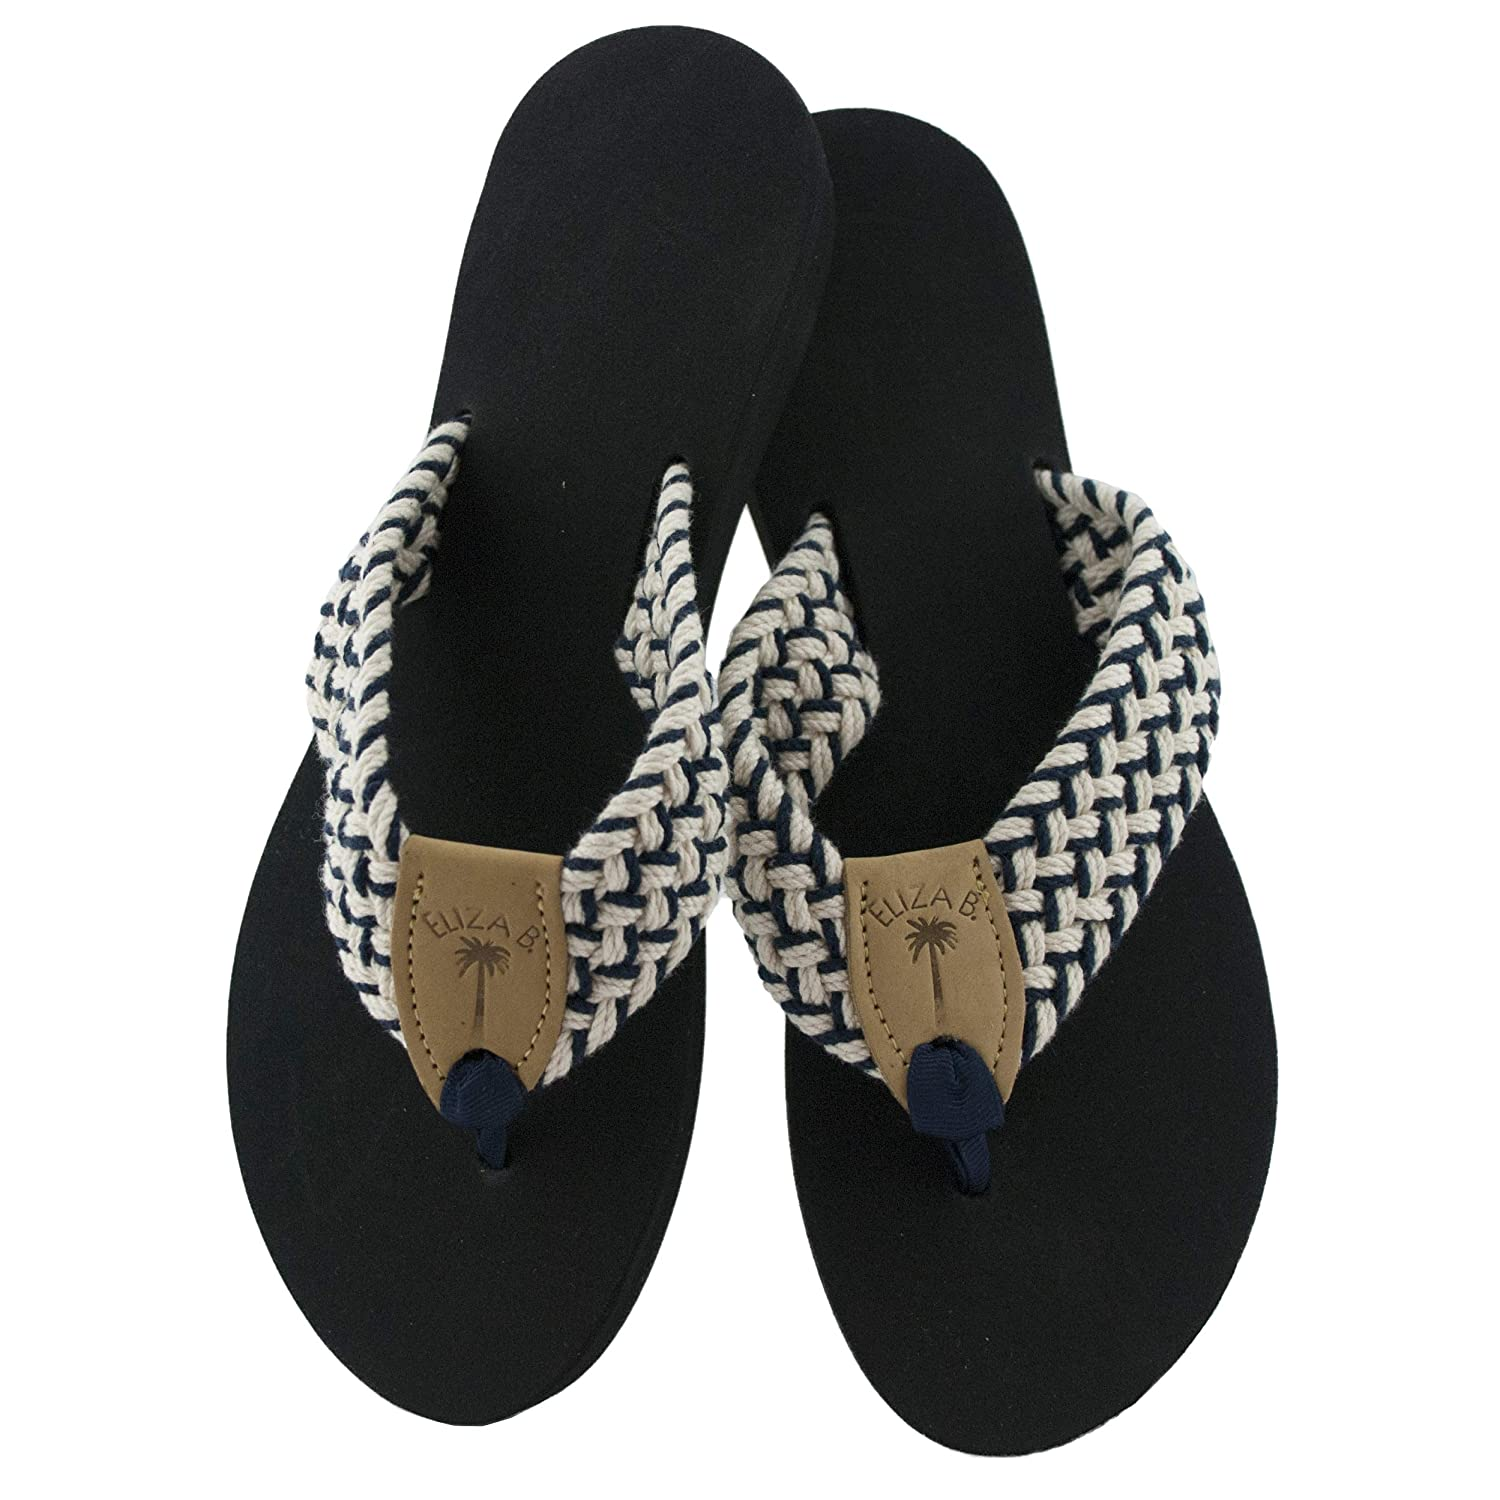 4f55a30b505e Amazon.com  Eliza B Newport Macrame Navy-Natural Sandal with Black Sole   Clothing